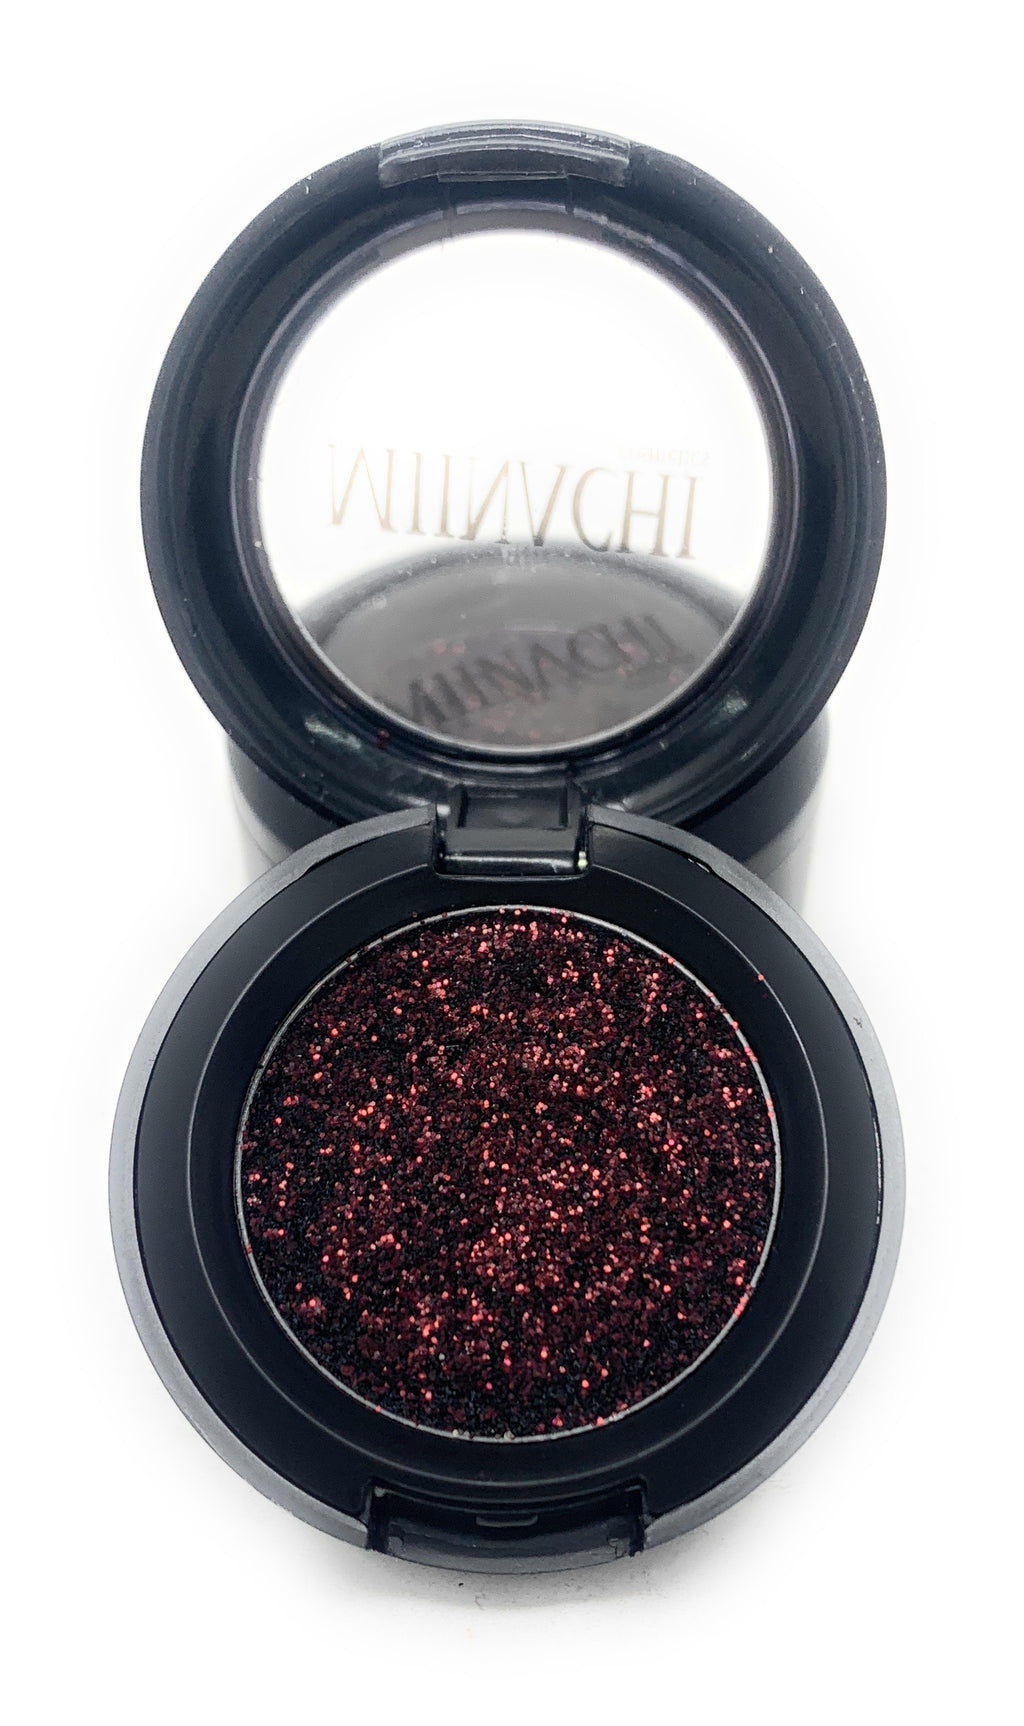 Single Pressed Glitter in the shade Diva, No Glue Needed, In Compact, Pigmented, No Fall Out, Glitter, Cosmetic Grade Glitter